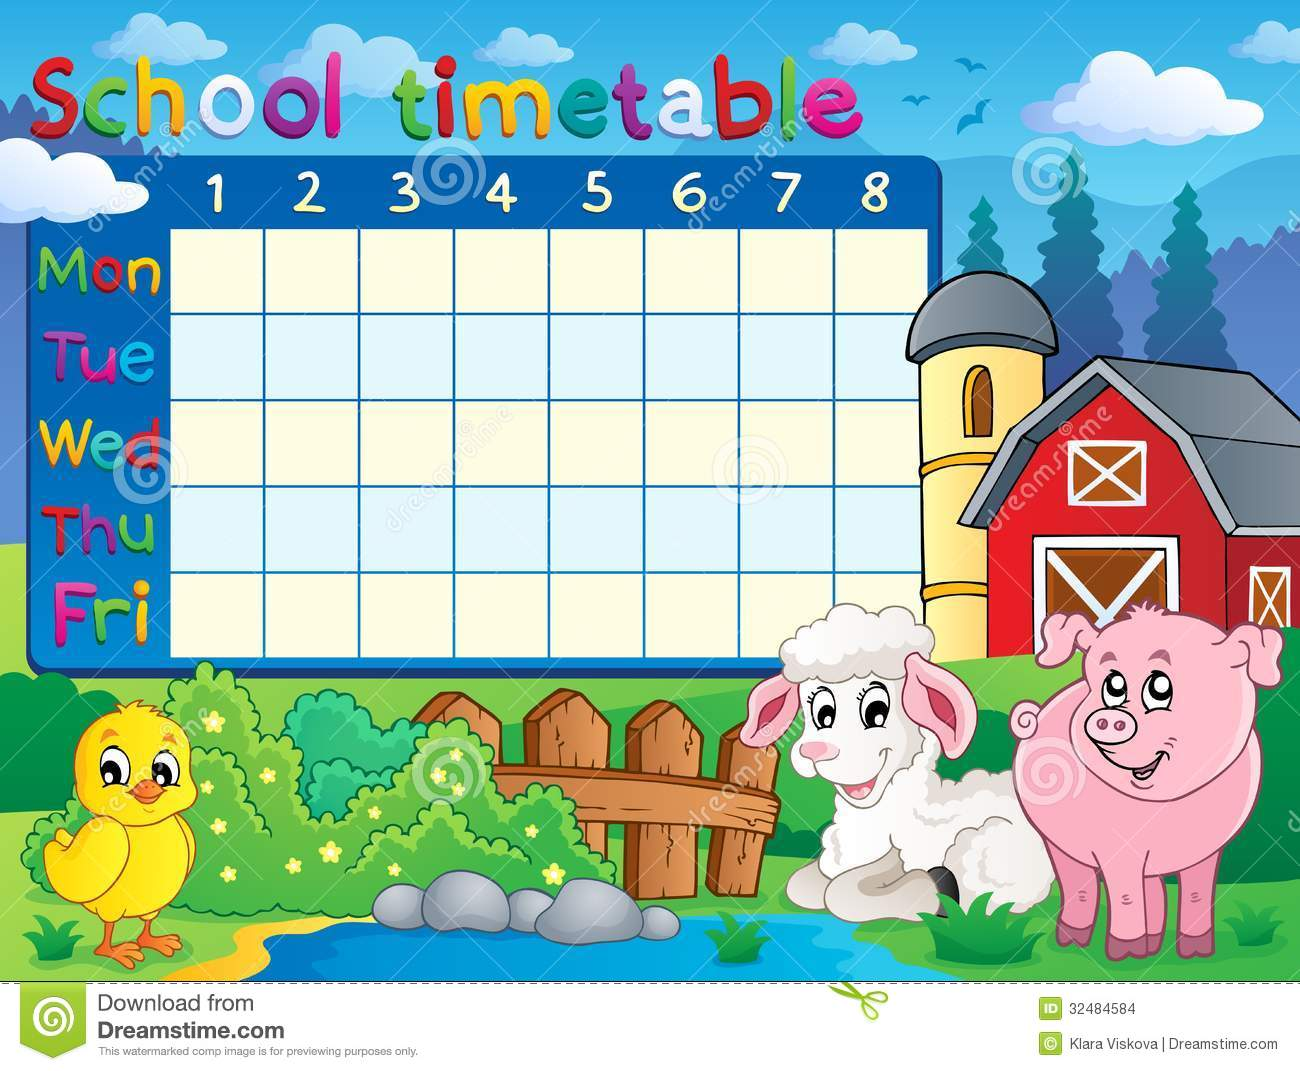 Time Table Chart School timetable topic image 1